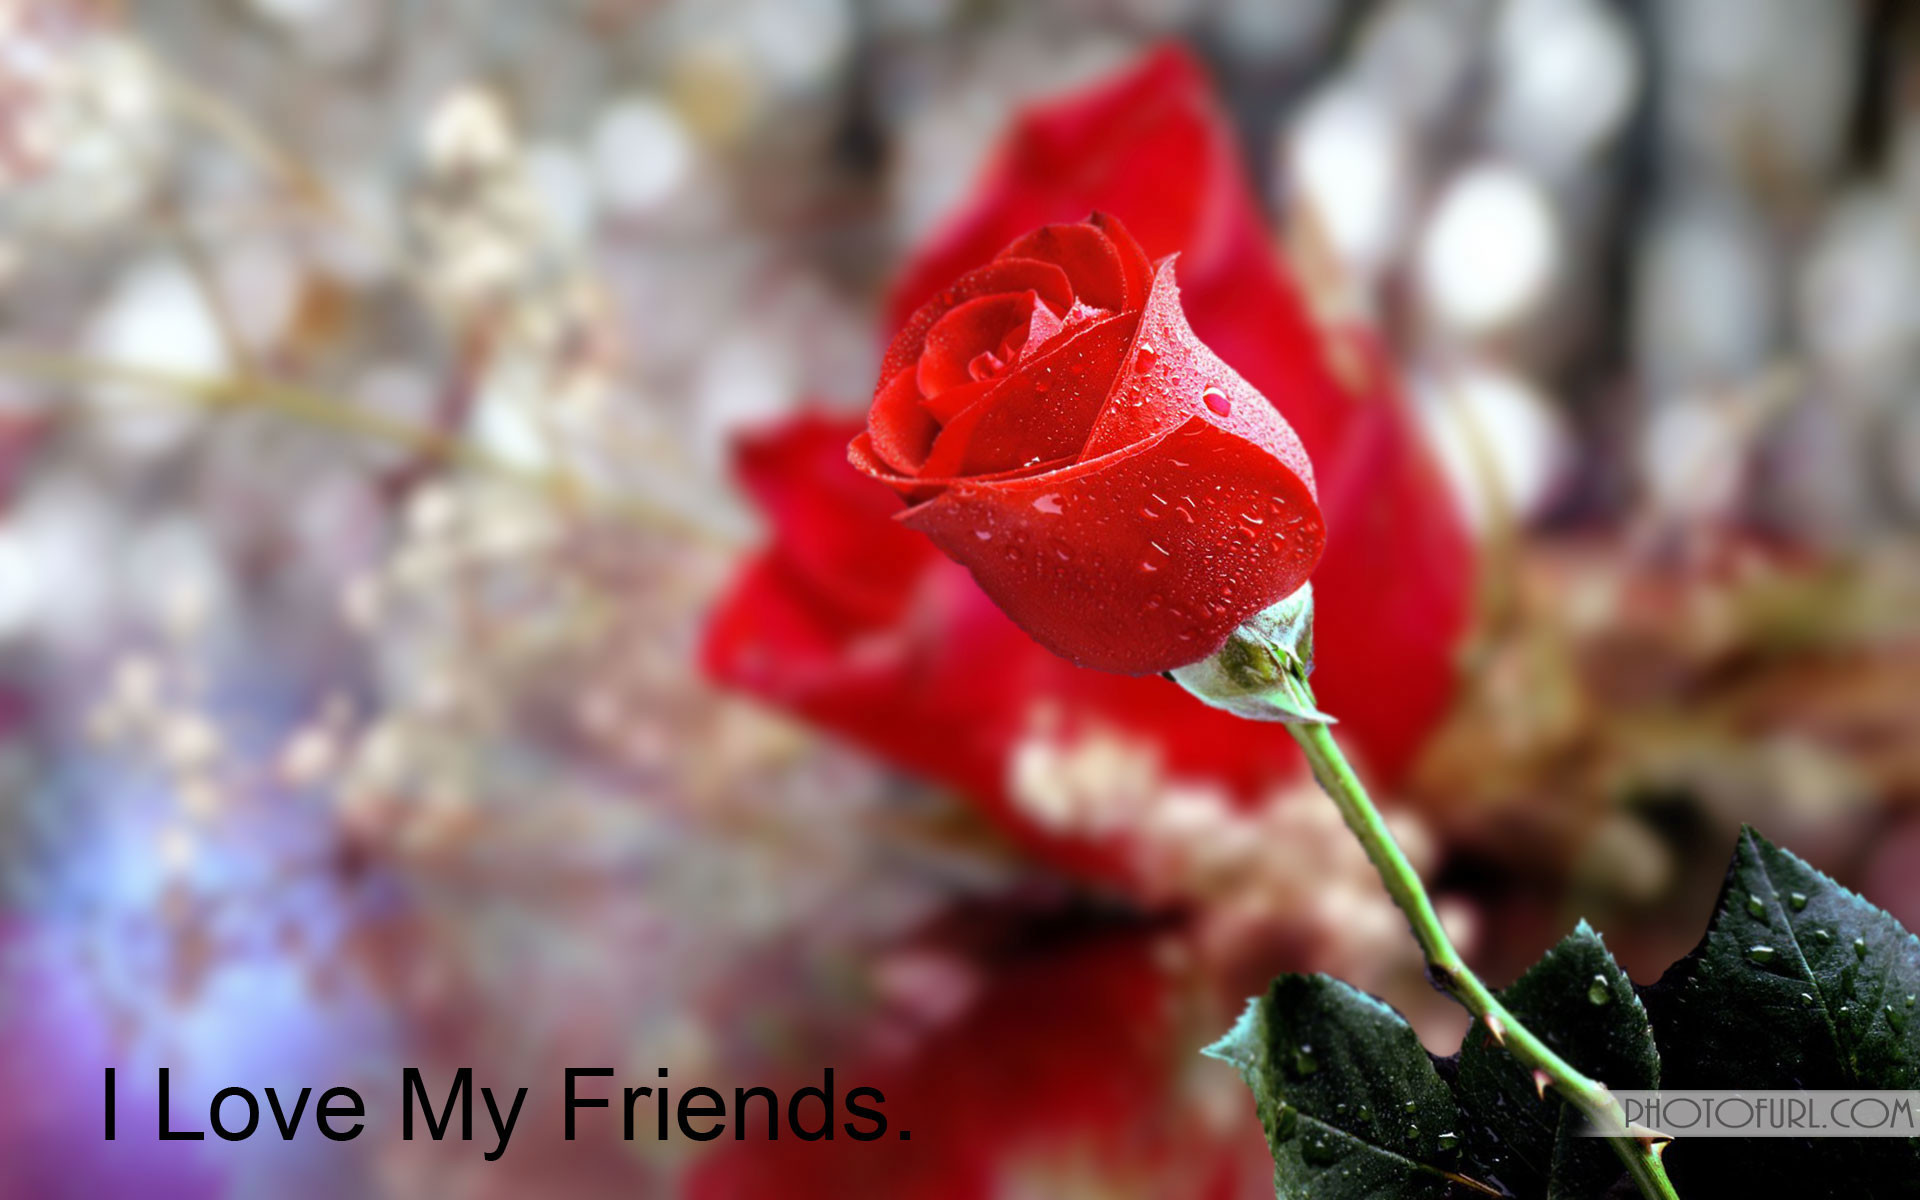 Friendship HD Wallpapers very attractive.I Love My Friends beautiful  Wallpapers.Download free .